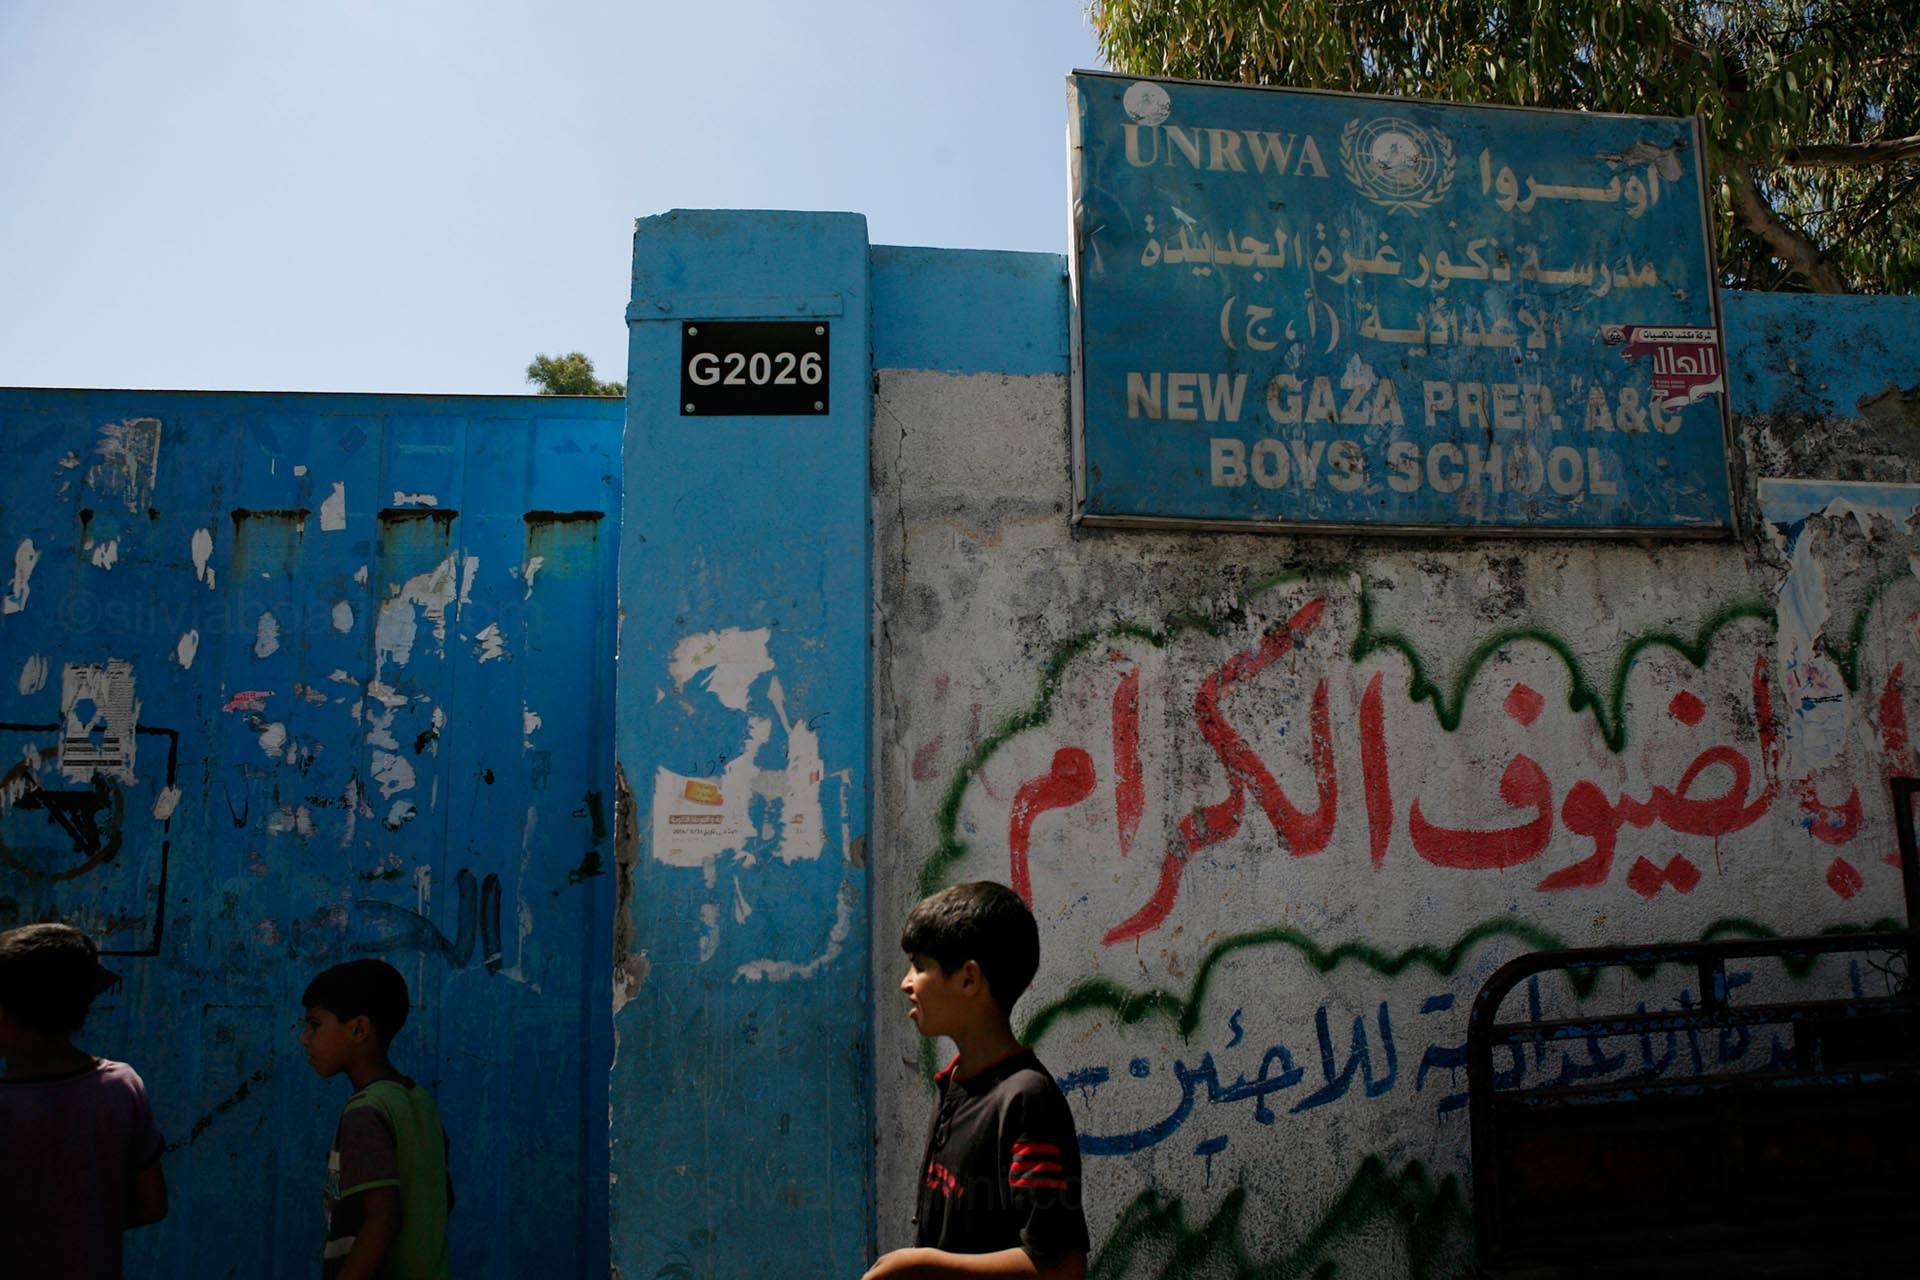 A UNRWA school in Gaza city. Up to half a million people were displaced during the war. Gaza, July 2014